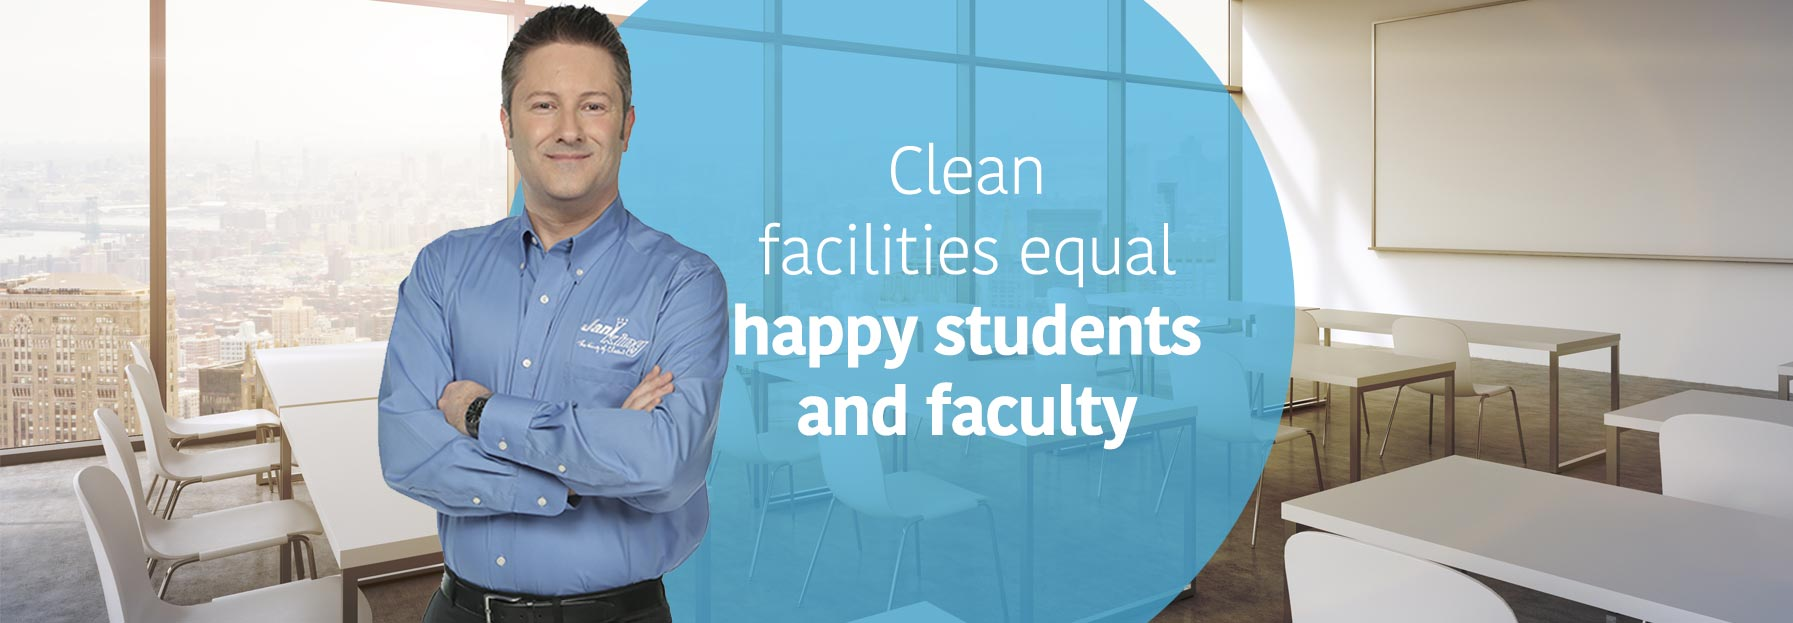 Jani-King Education Cleaning Services